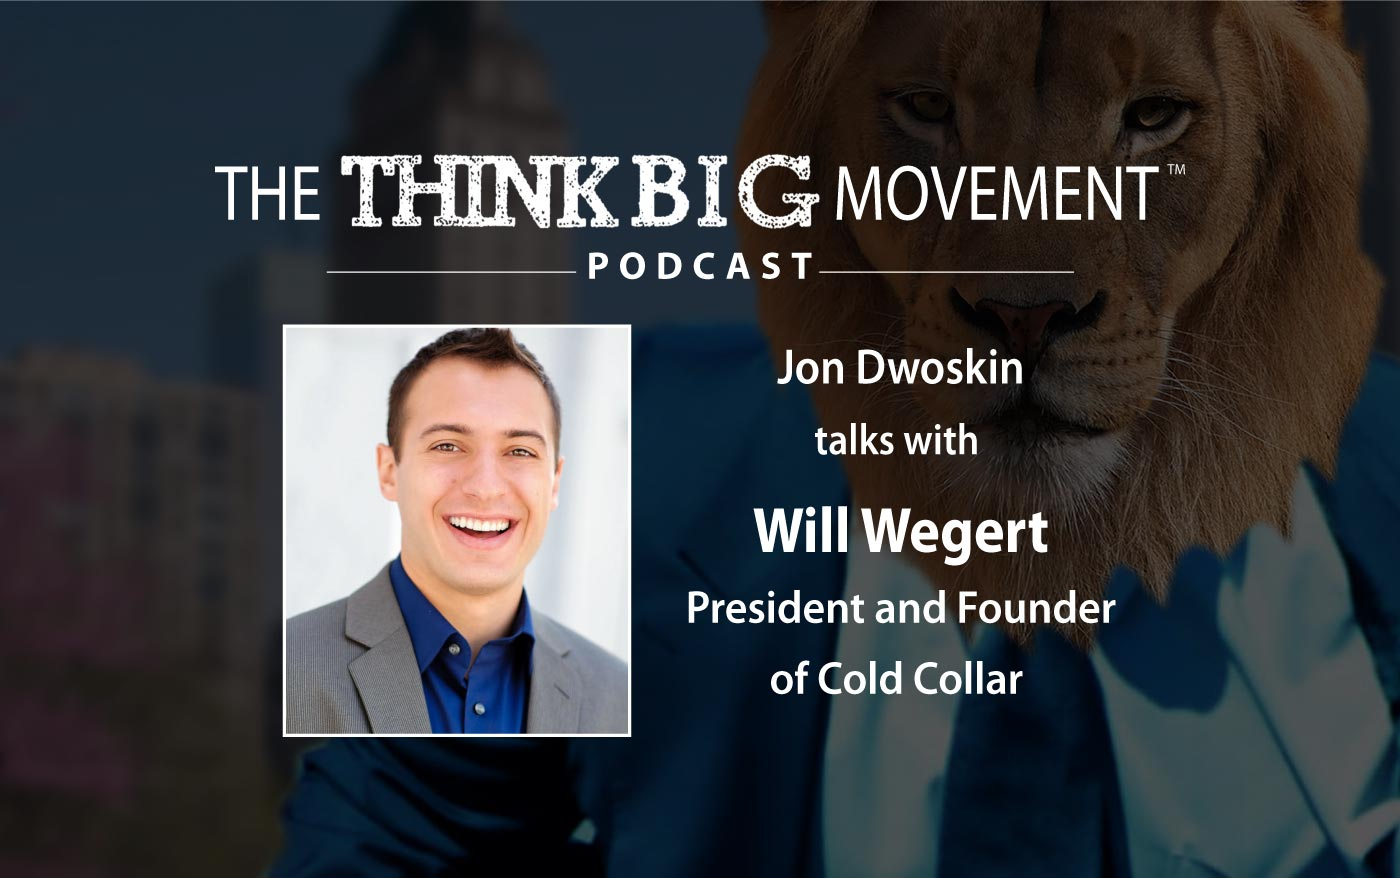 The Think Big Movement Podcast - Jon Dwoskin Interviews Will Wegert, President and Founder of Cold Collar